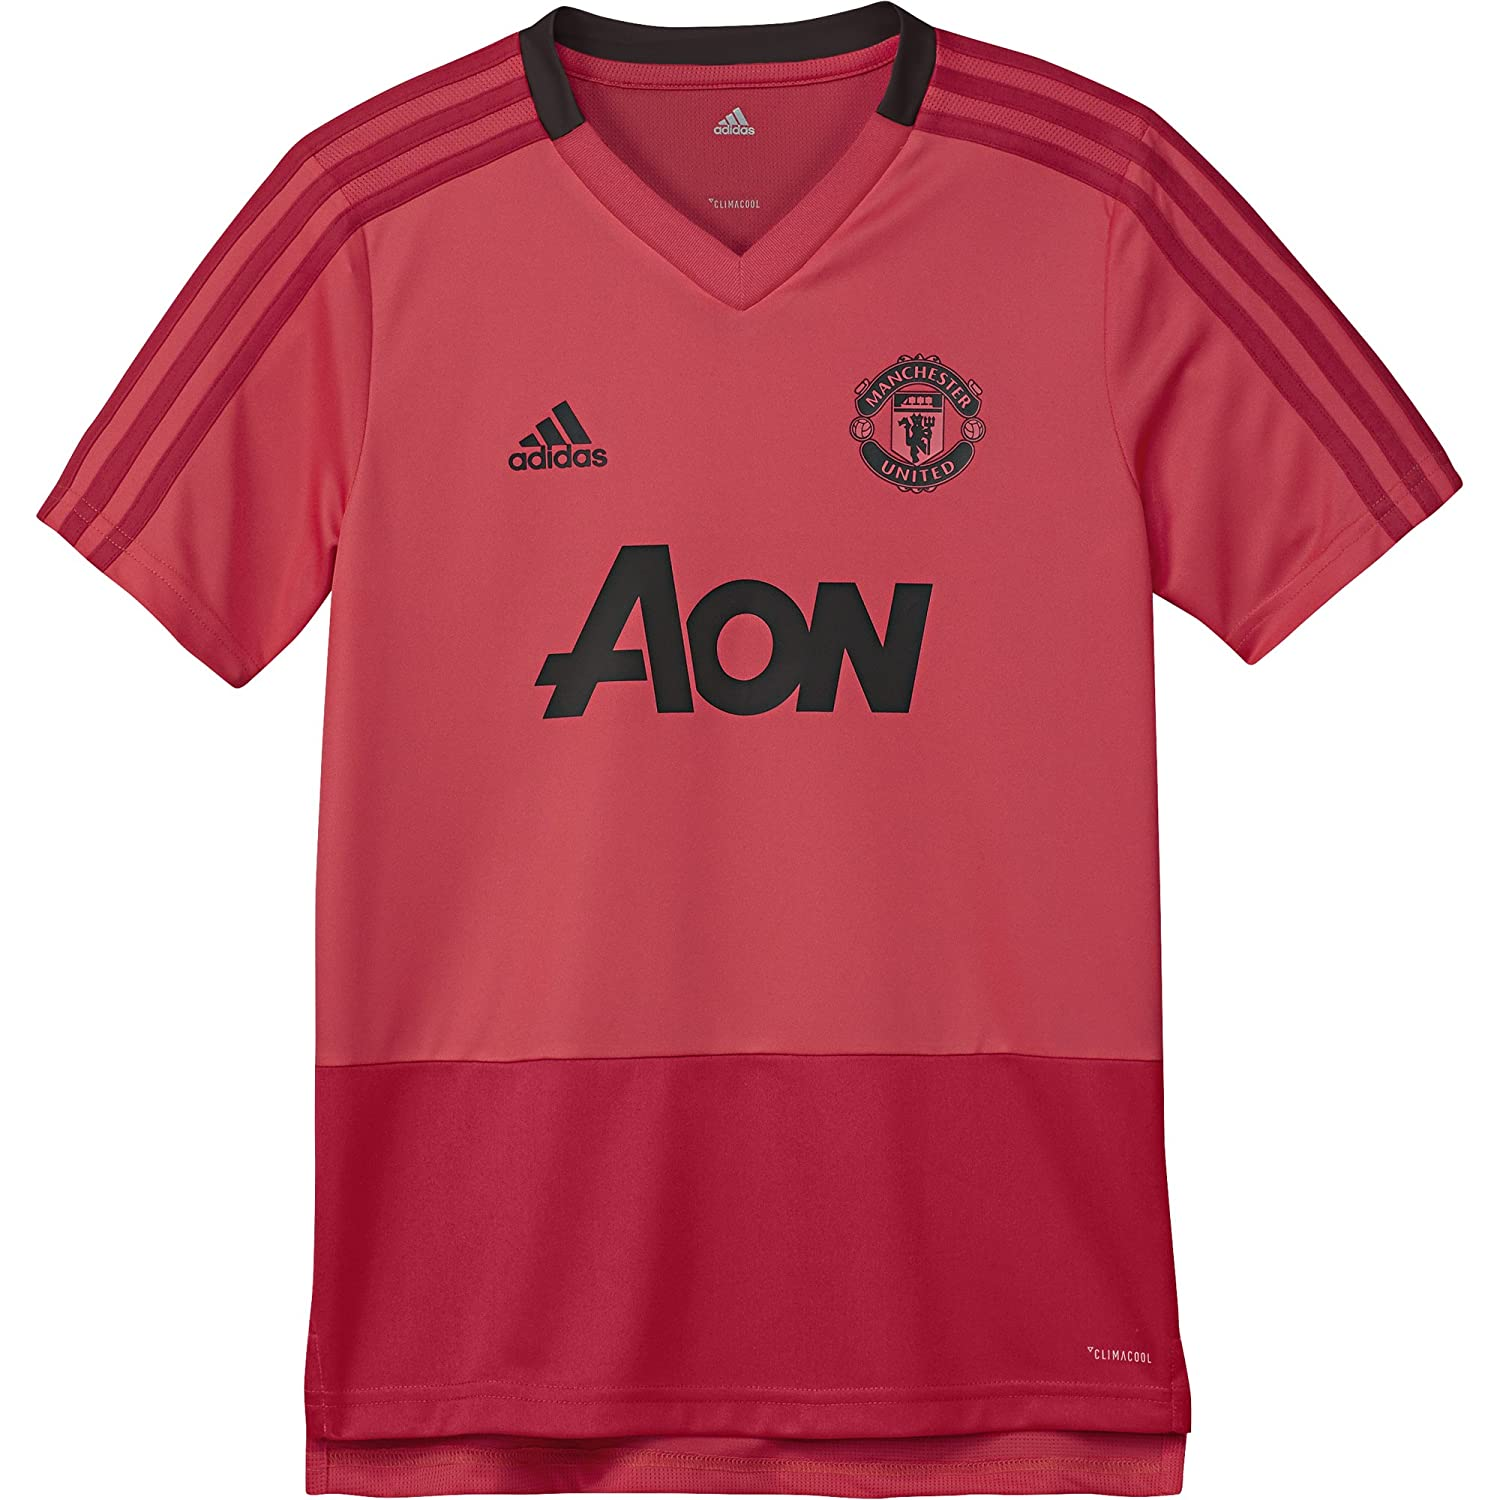 adidas 2018-2019 Man Utd トレーニングシャツ (ピンク) - キッズ 9/10 Years - US Small Boys - 28-30\ rot (500) B07FT2RVJ5